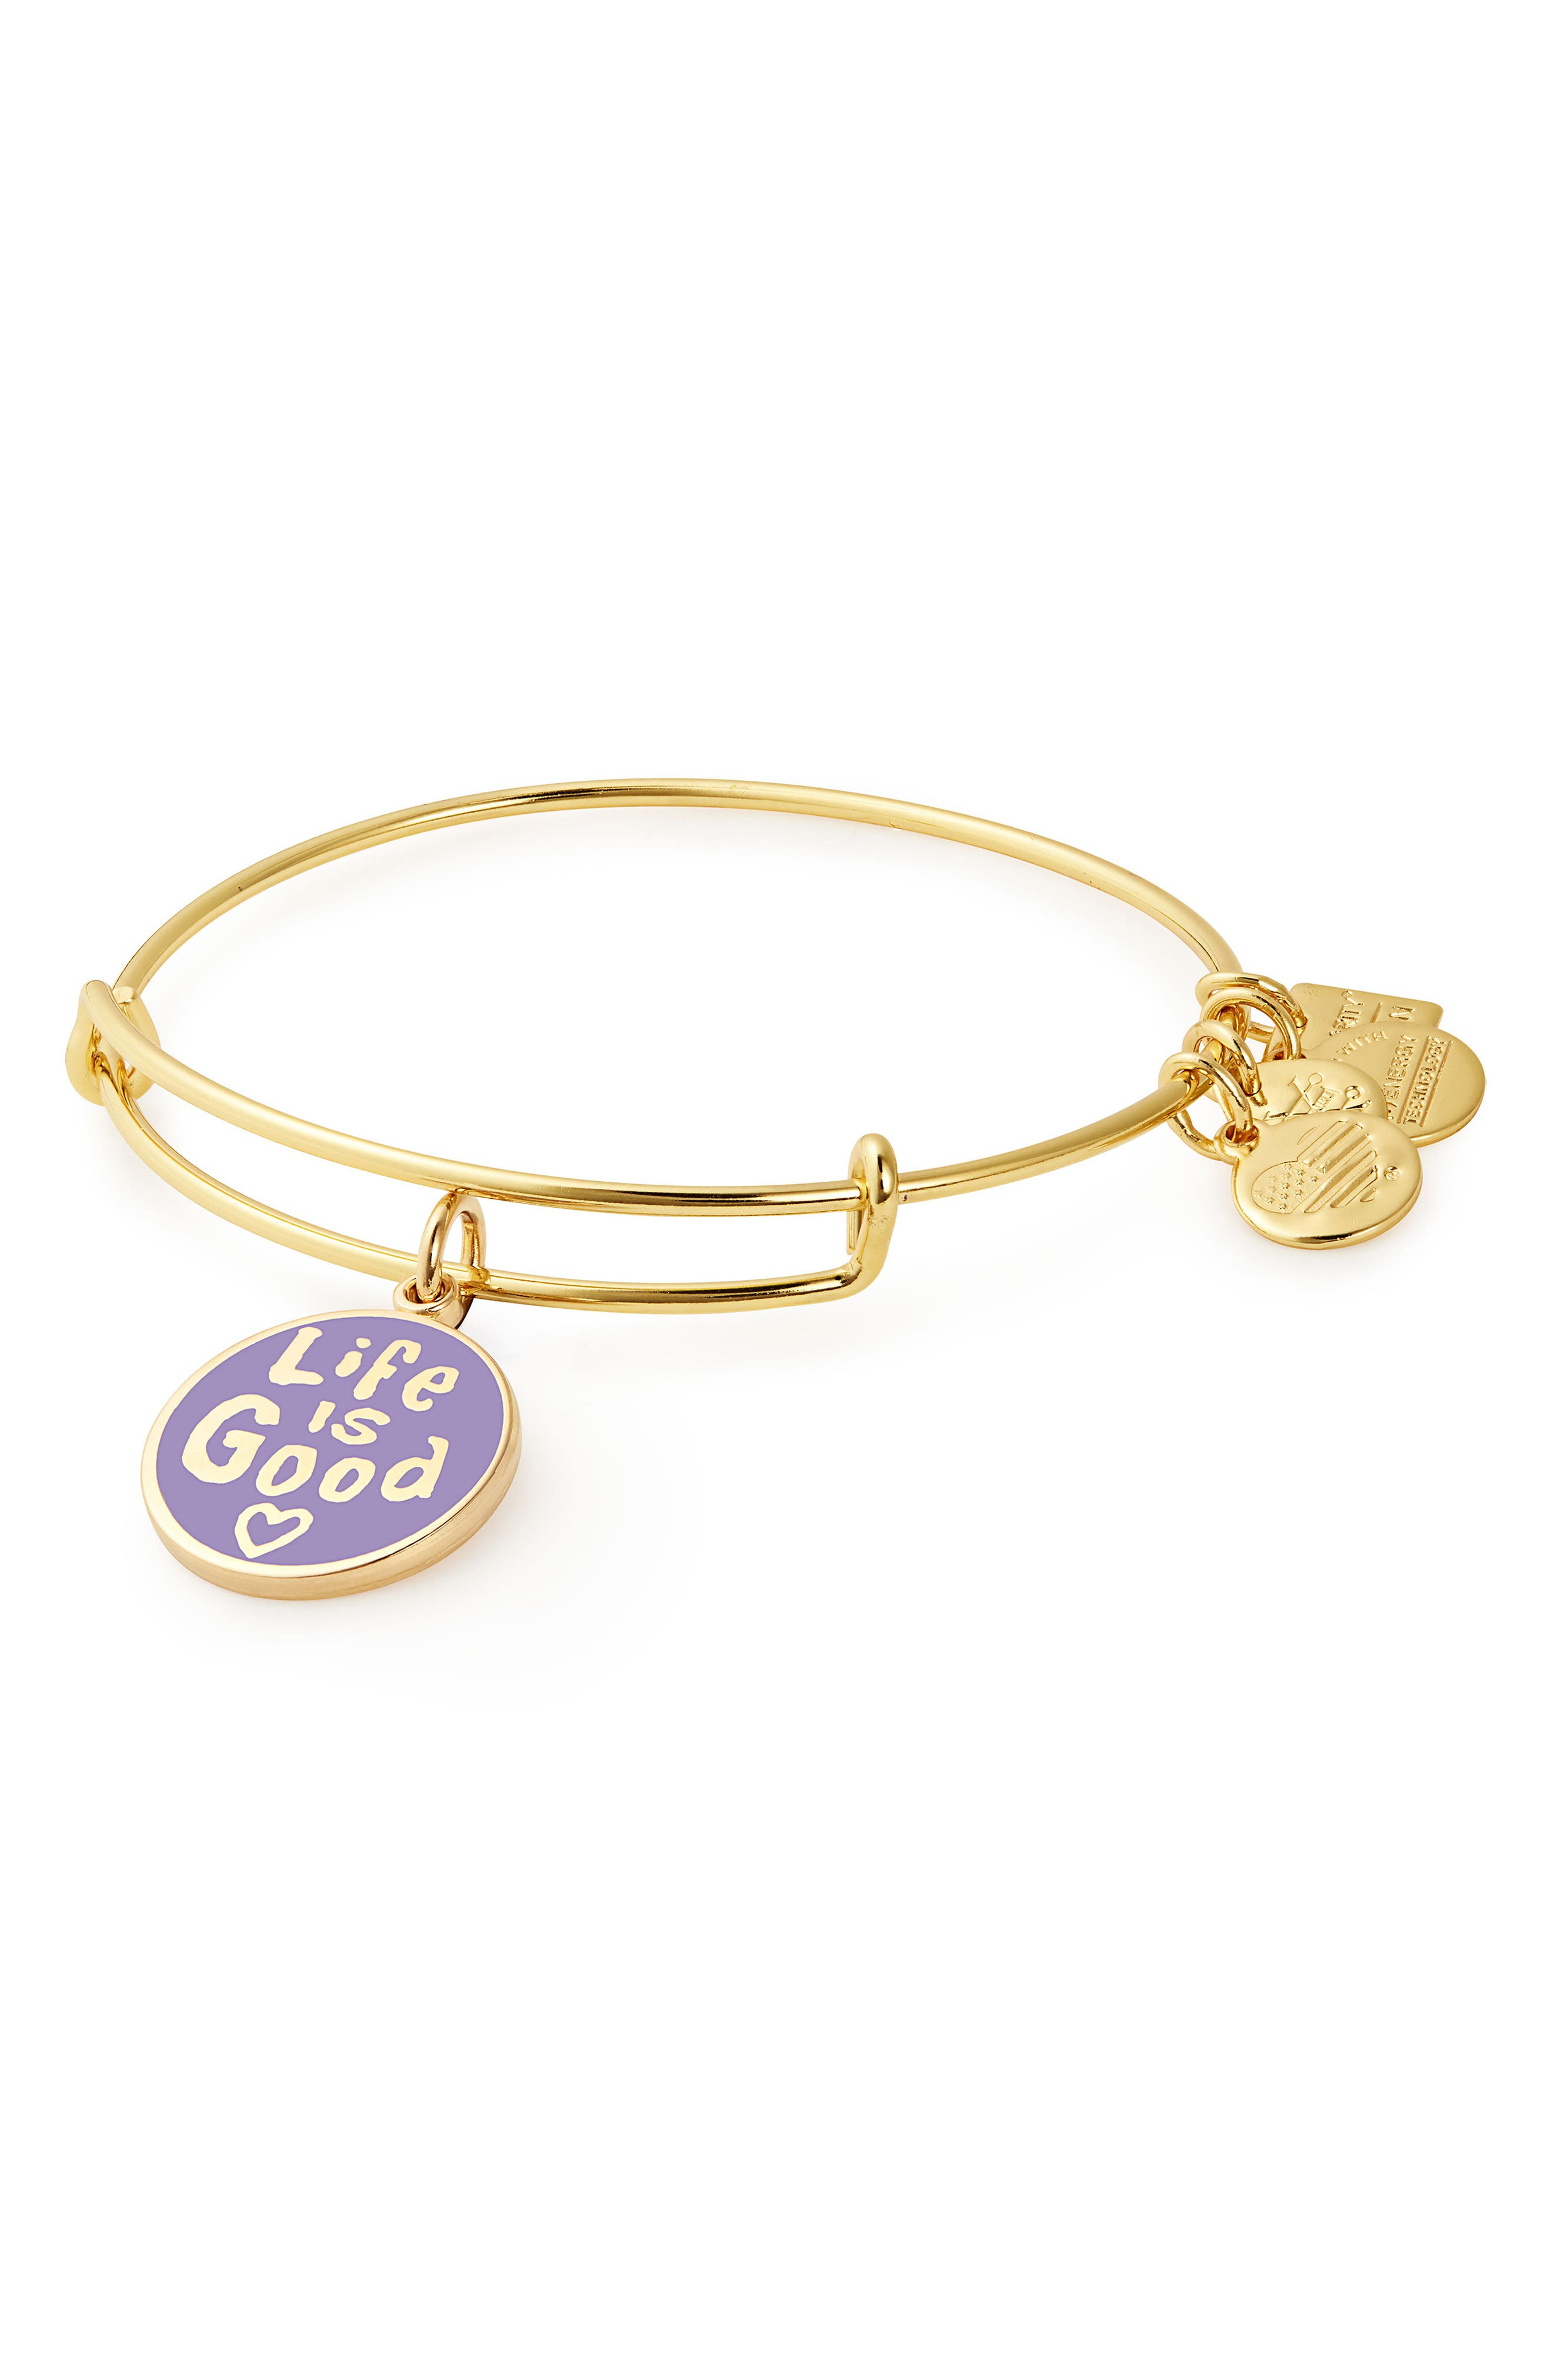 Charity by Design Life is Good Bangle,                             Main thumbnail 1, color,                             GOLD